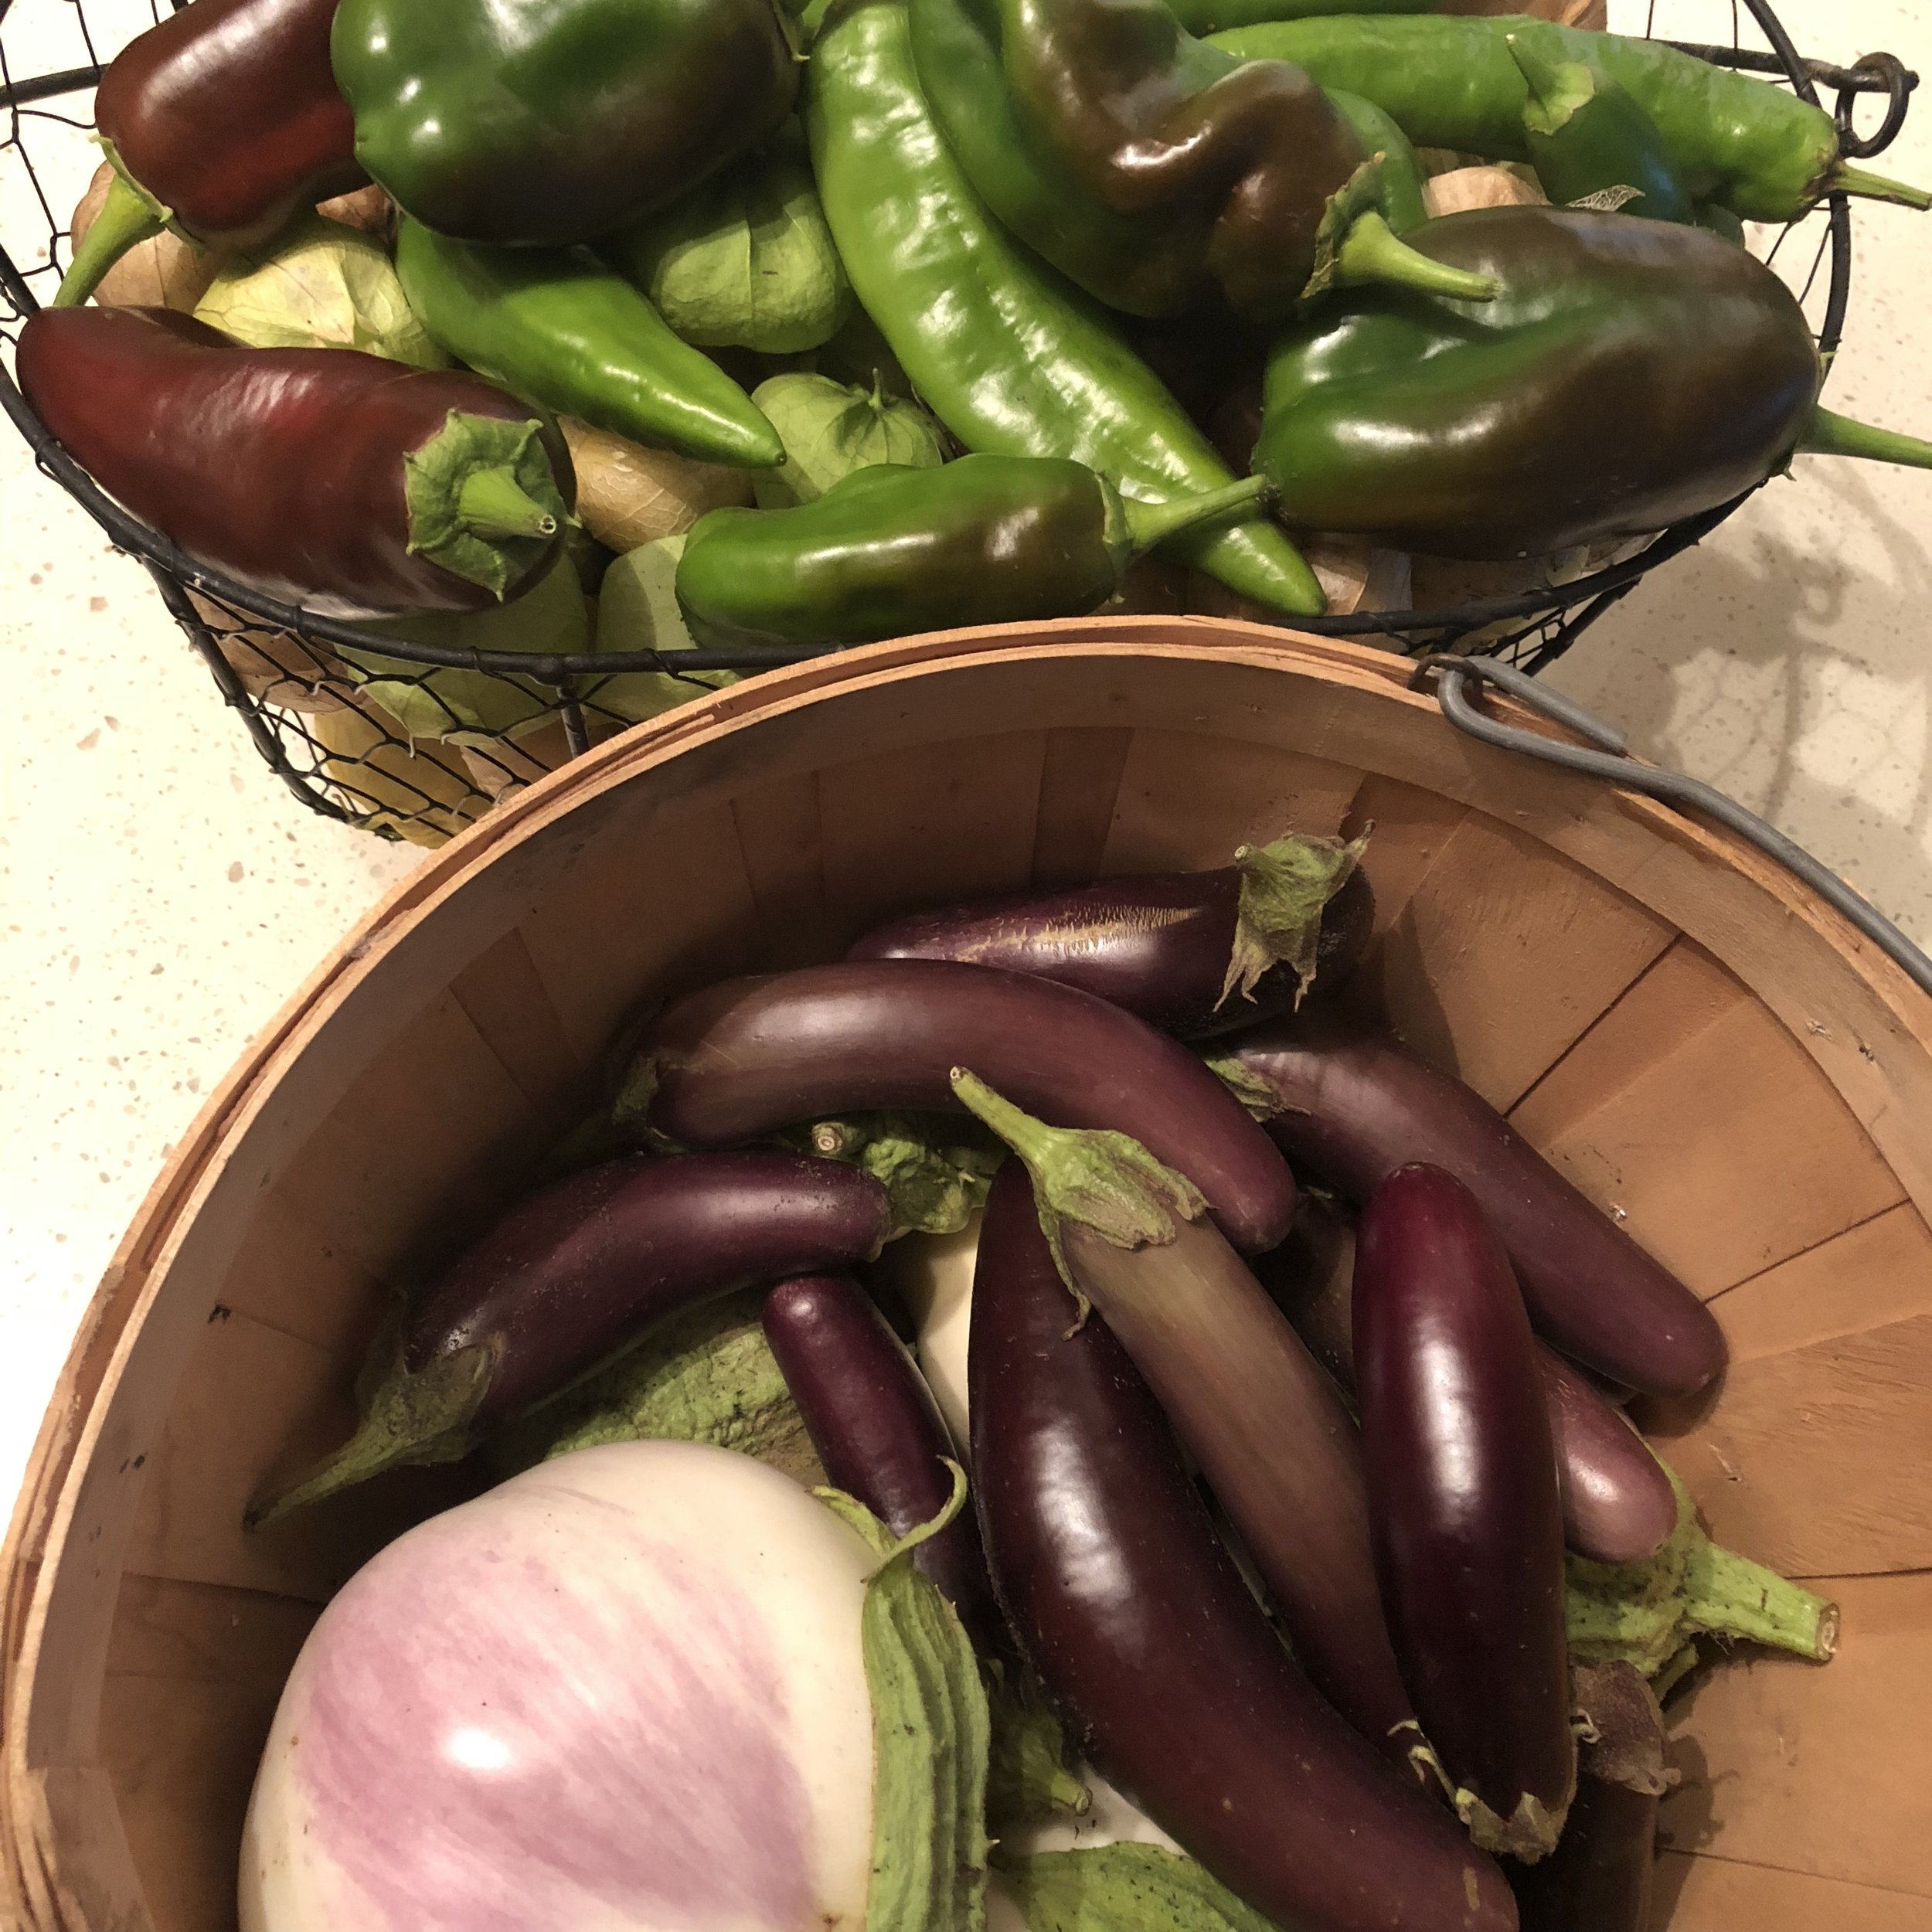 A basket of purple eggplant and green peppers.